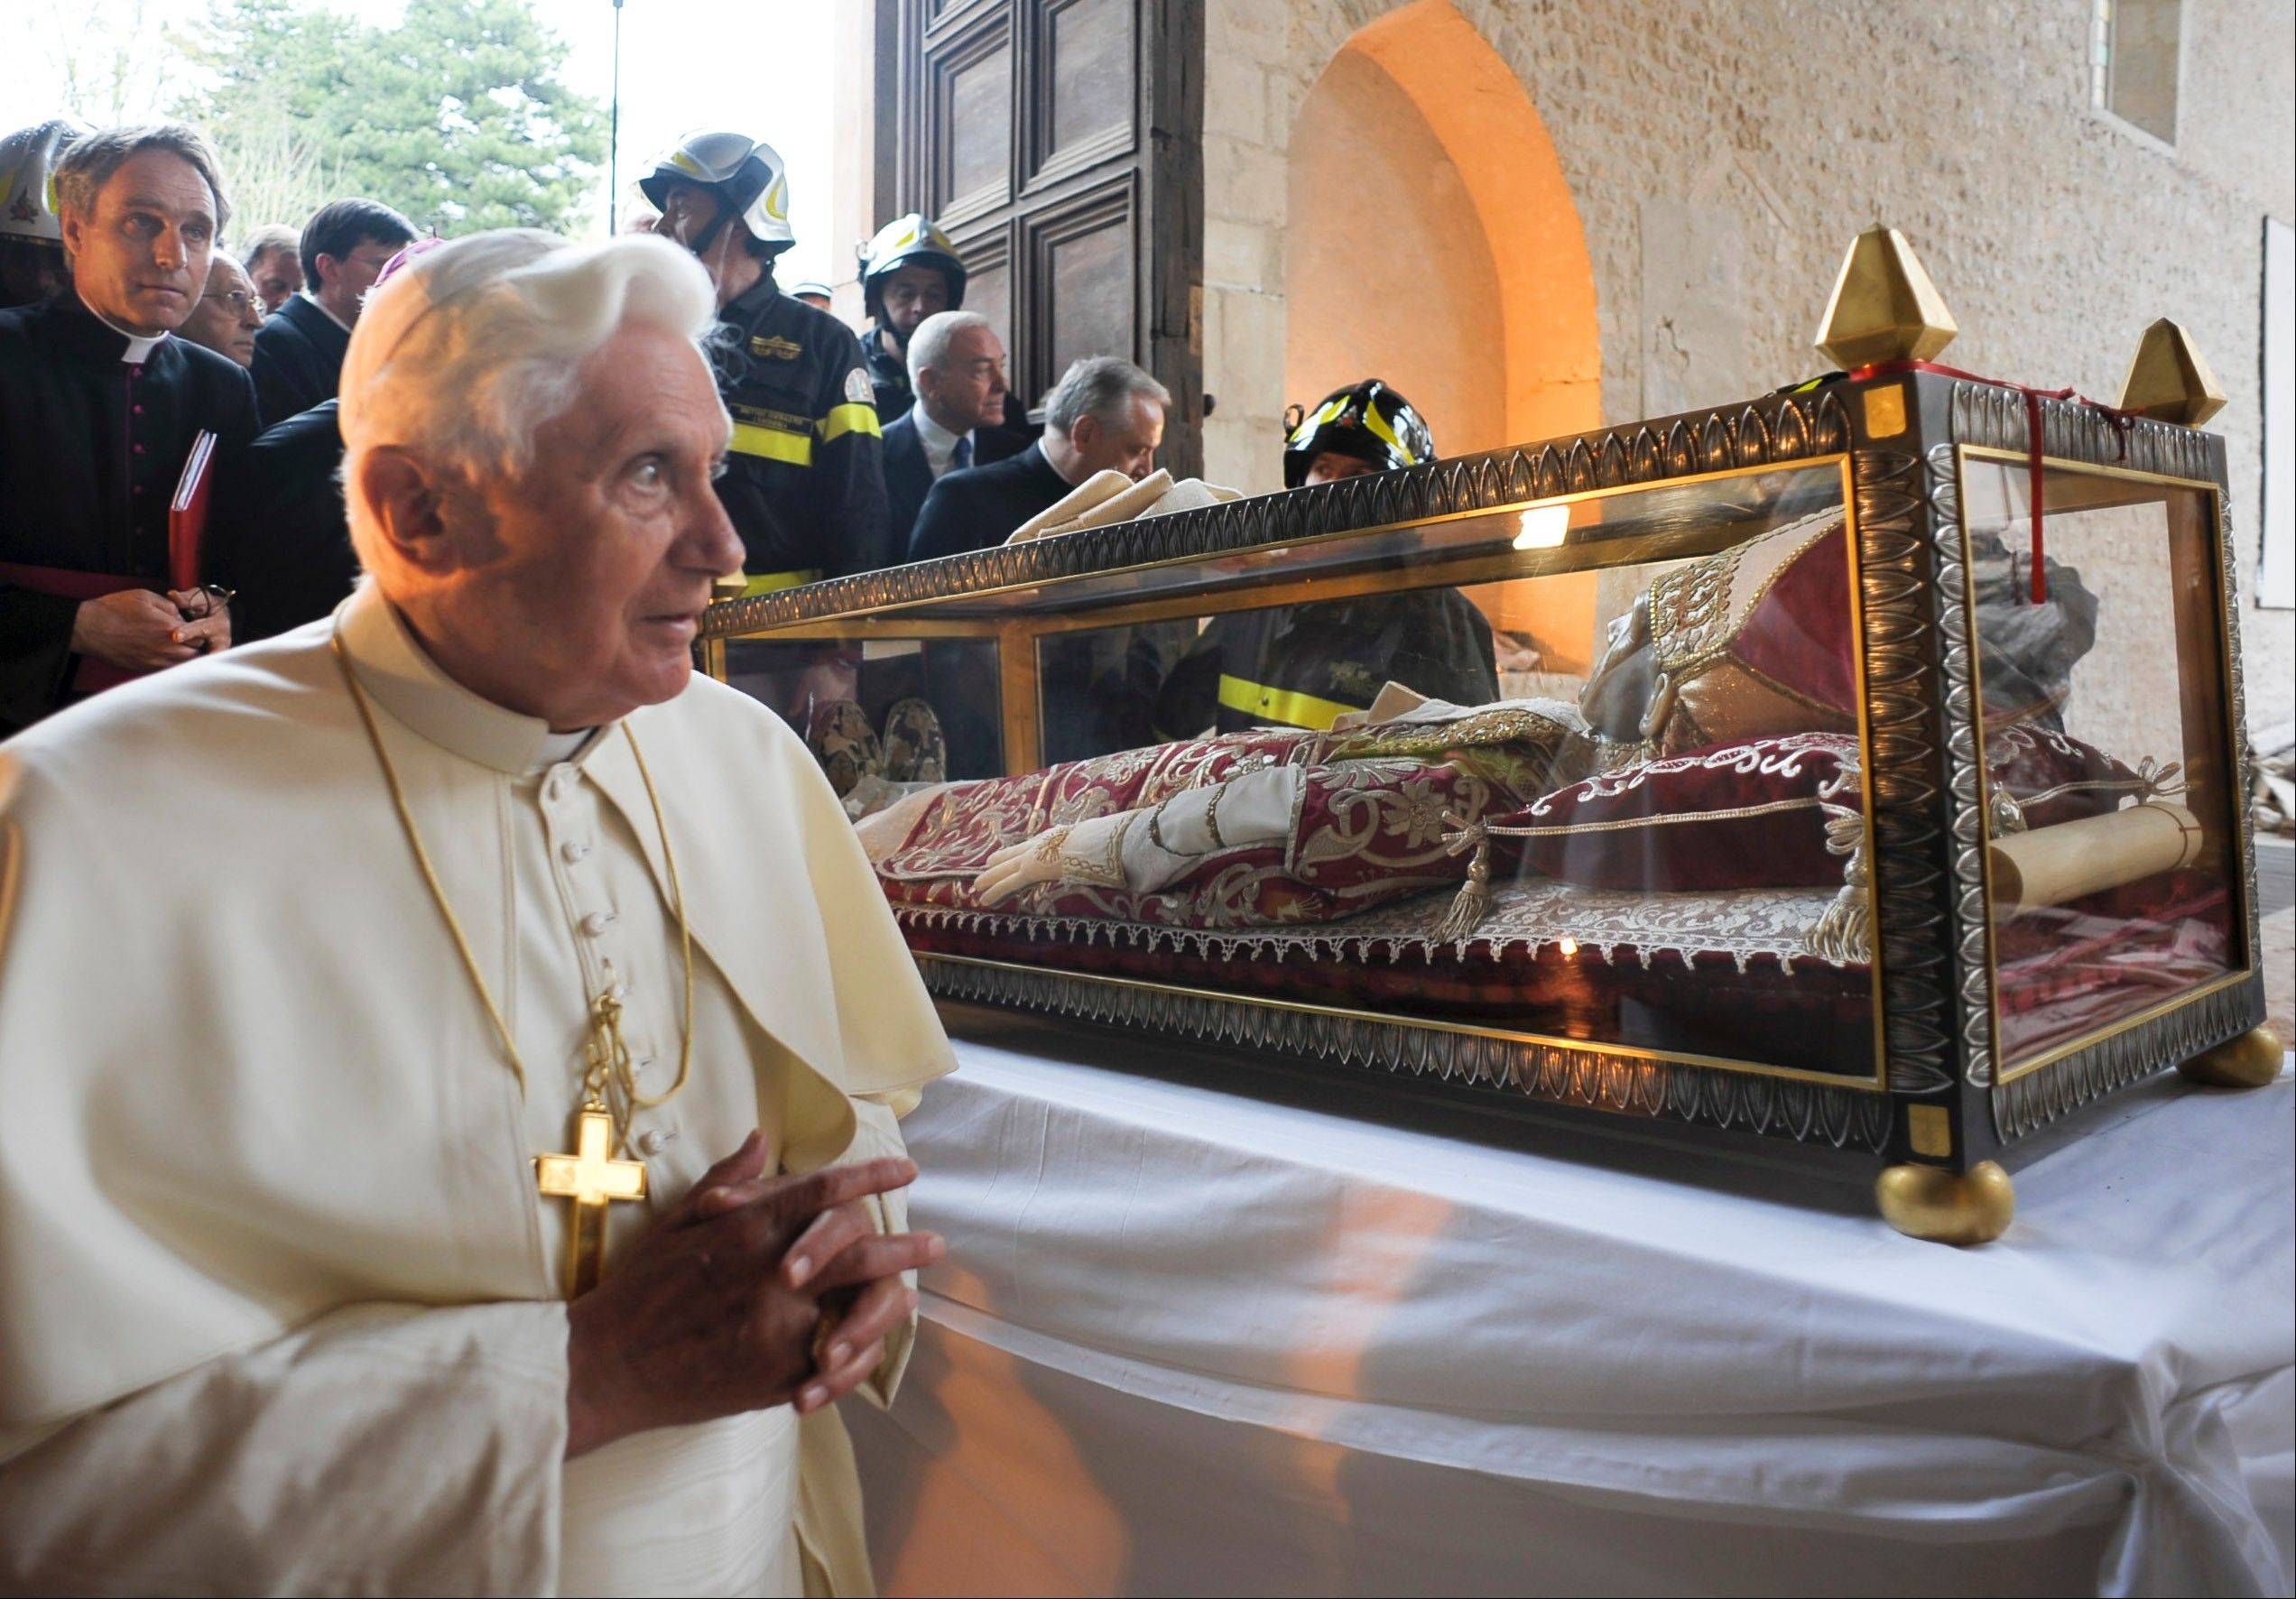 FPope Benedict XVI stands by the salvaged remains of Pope Celestine V in the 13th-century Santa Maria di Collemaggio Basilica, the symbol of the city of L'Aquila.